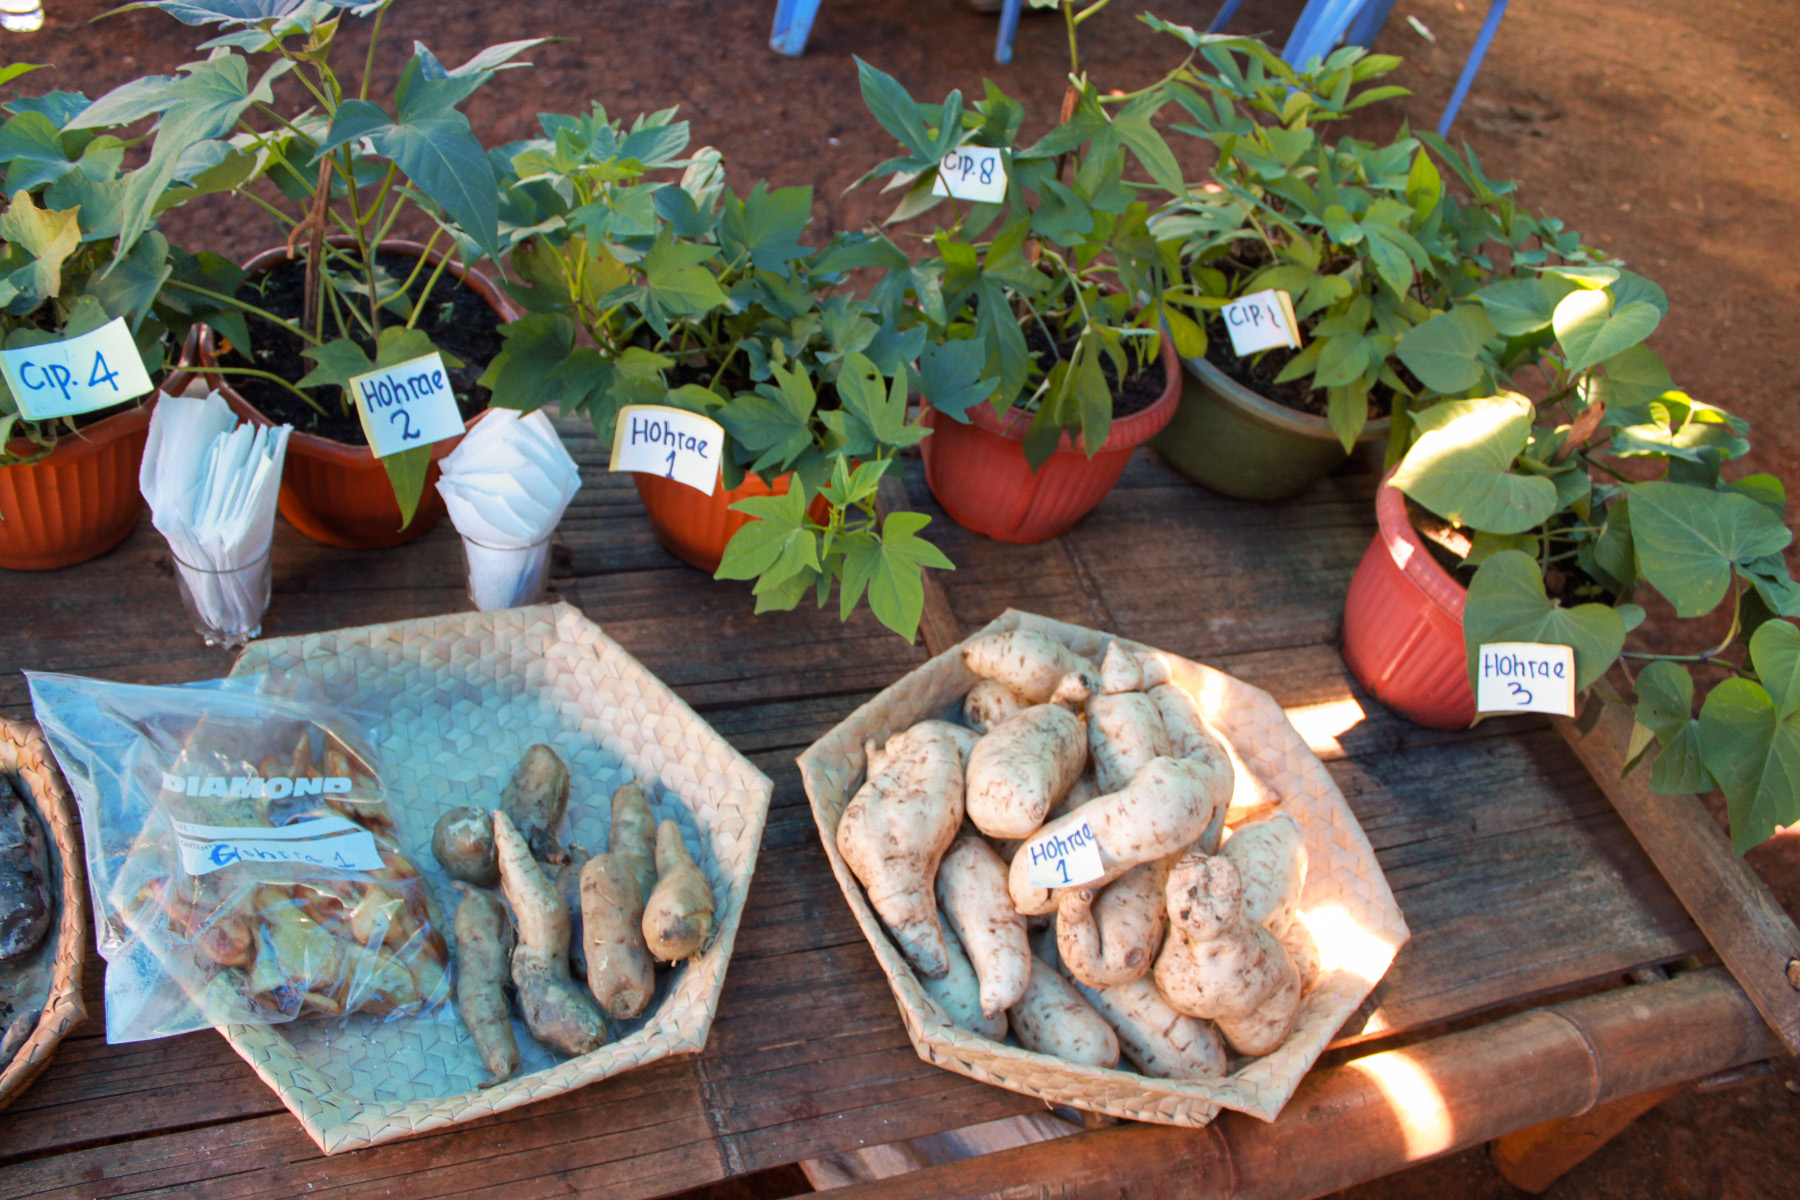 Some of the sweet potato varieties tested.